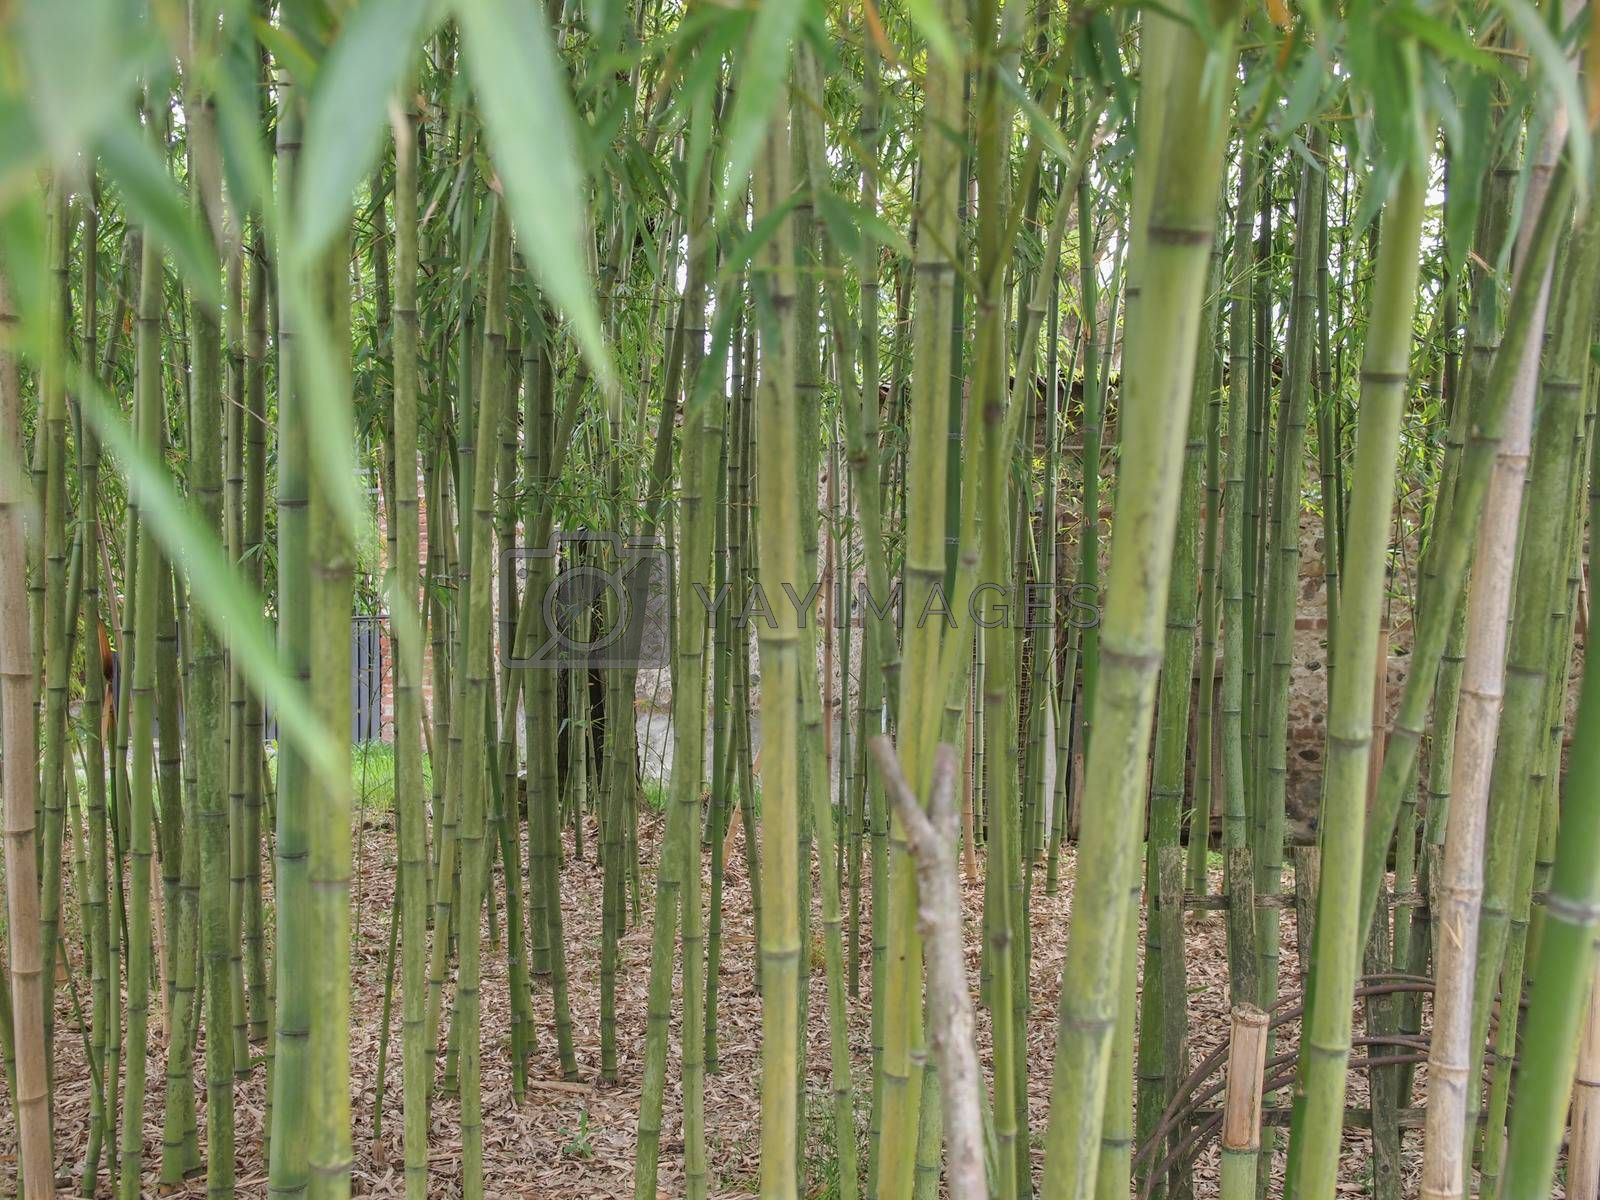 Bamboo flowering perennial evergreen plants in the grass family Poaceae